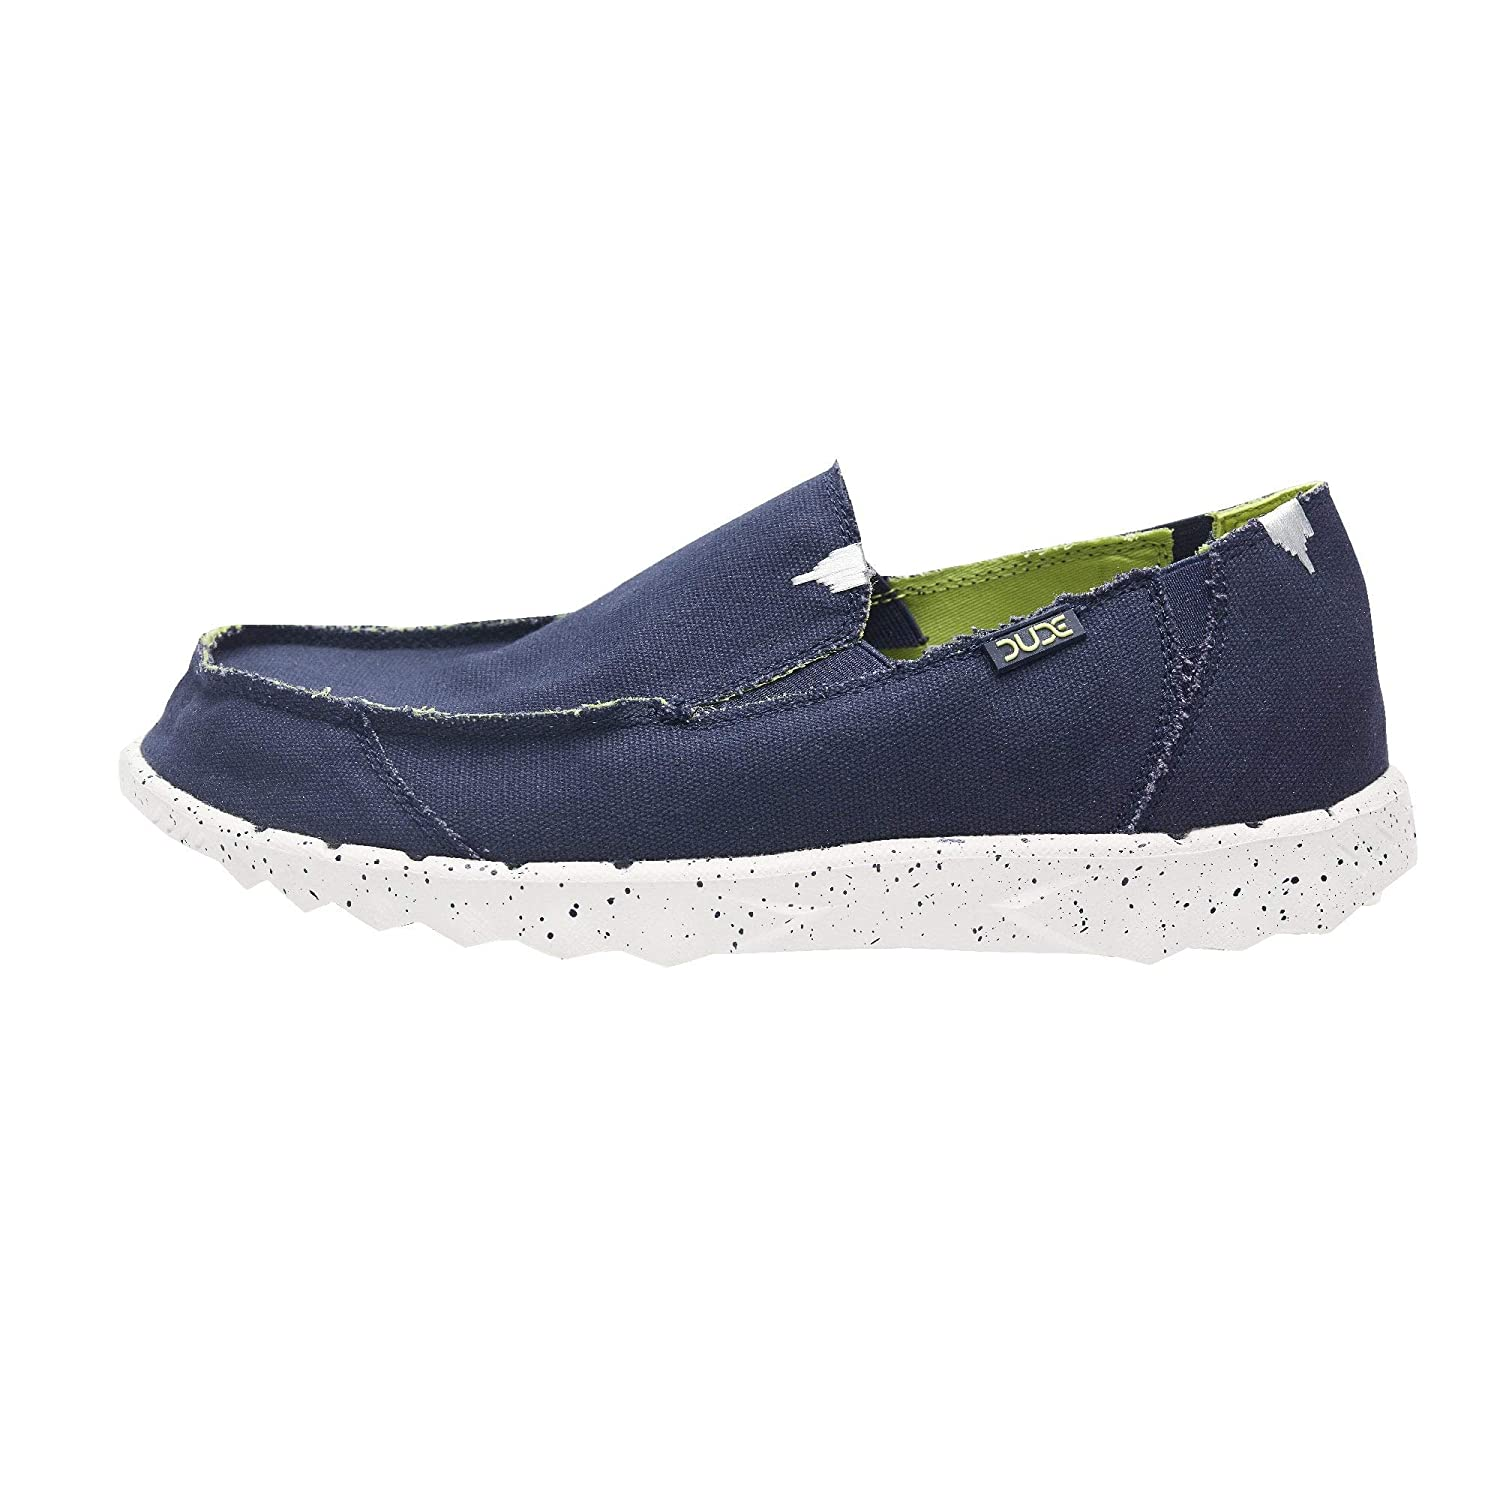 Dude Shoes Hombres Farty Funk Marina Lime: Amazon.es: Zapatos y complementos